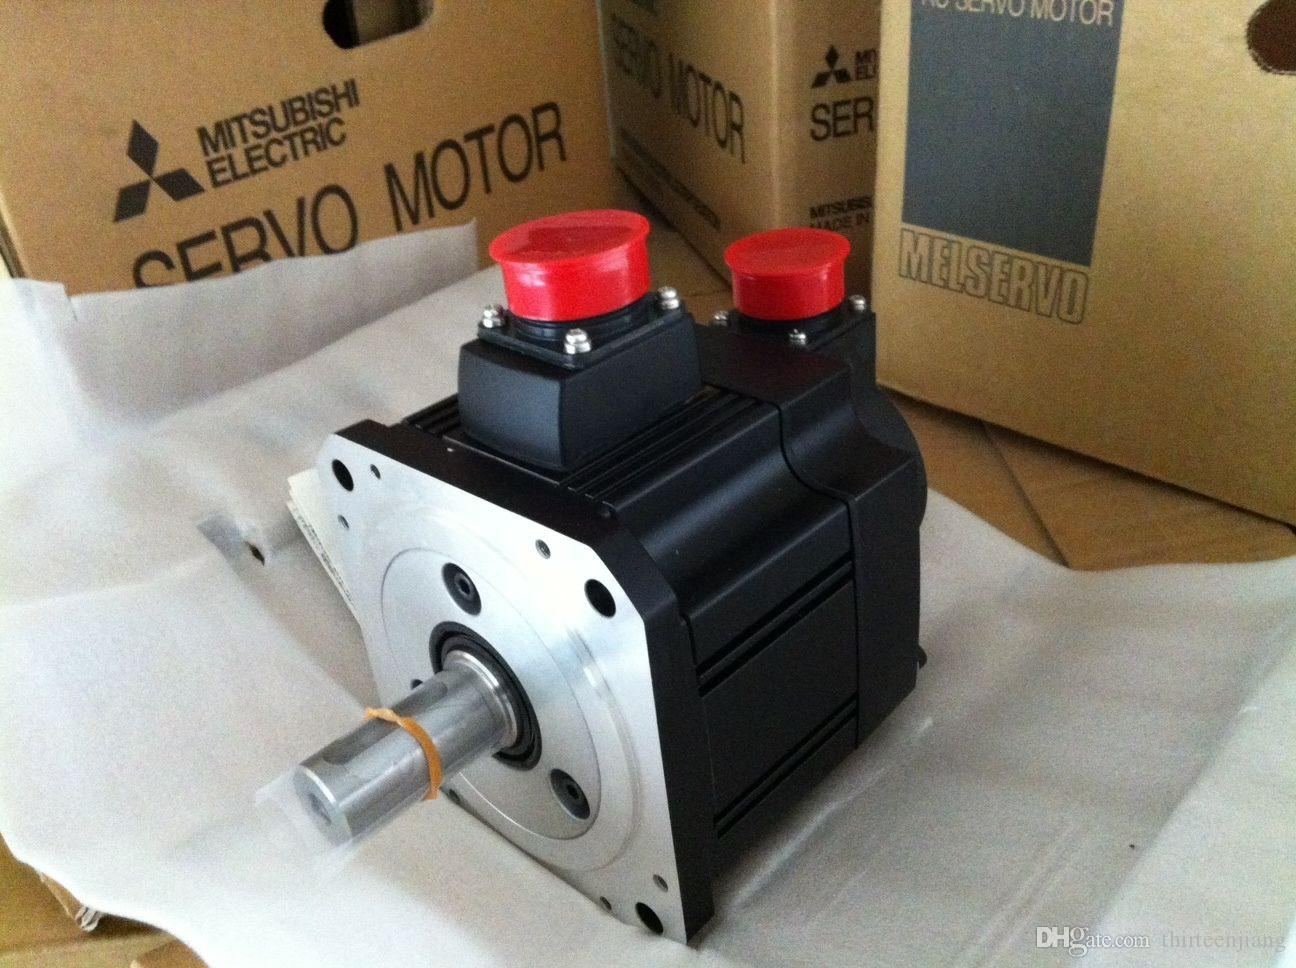 1 PC New Mitsubishi HC-SF81 AC Servo Motor In Box Free Expedited Shipping